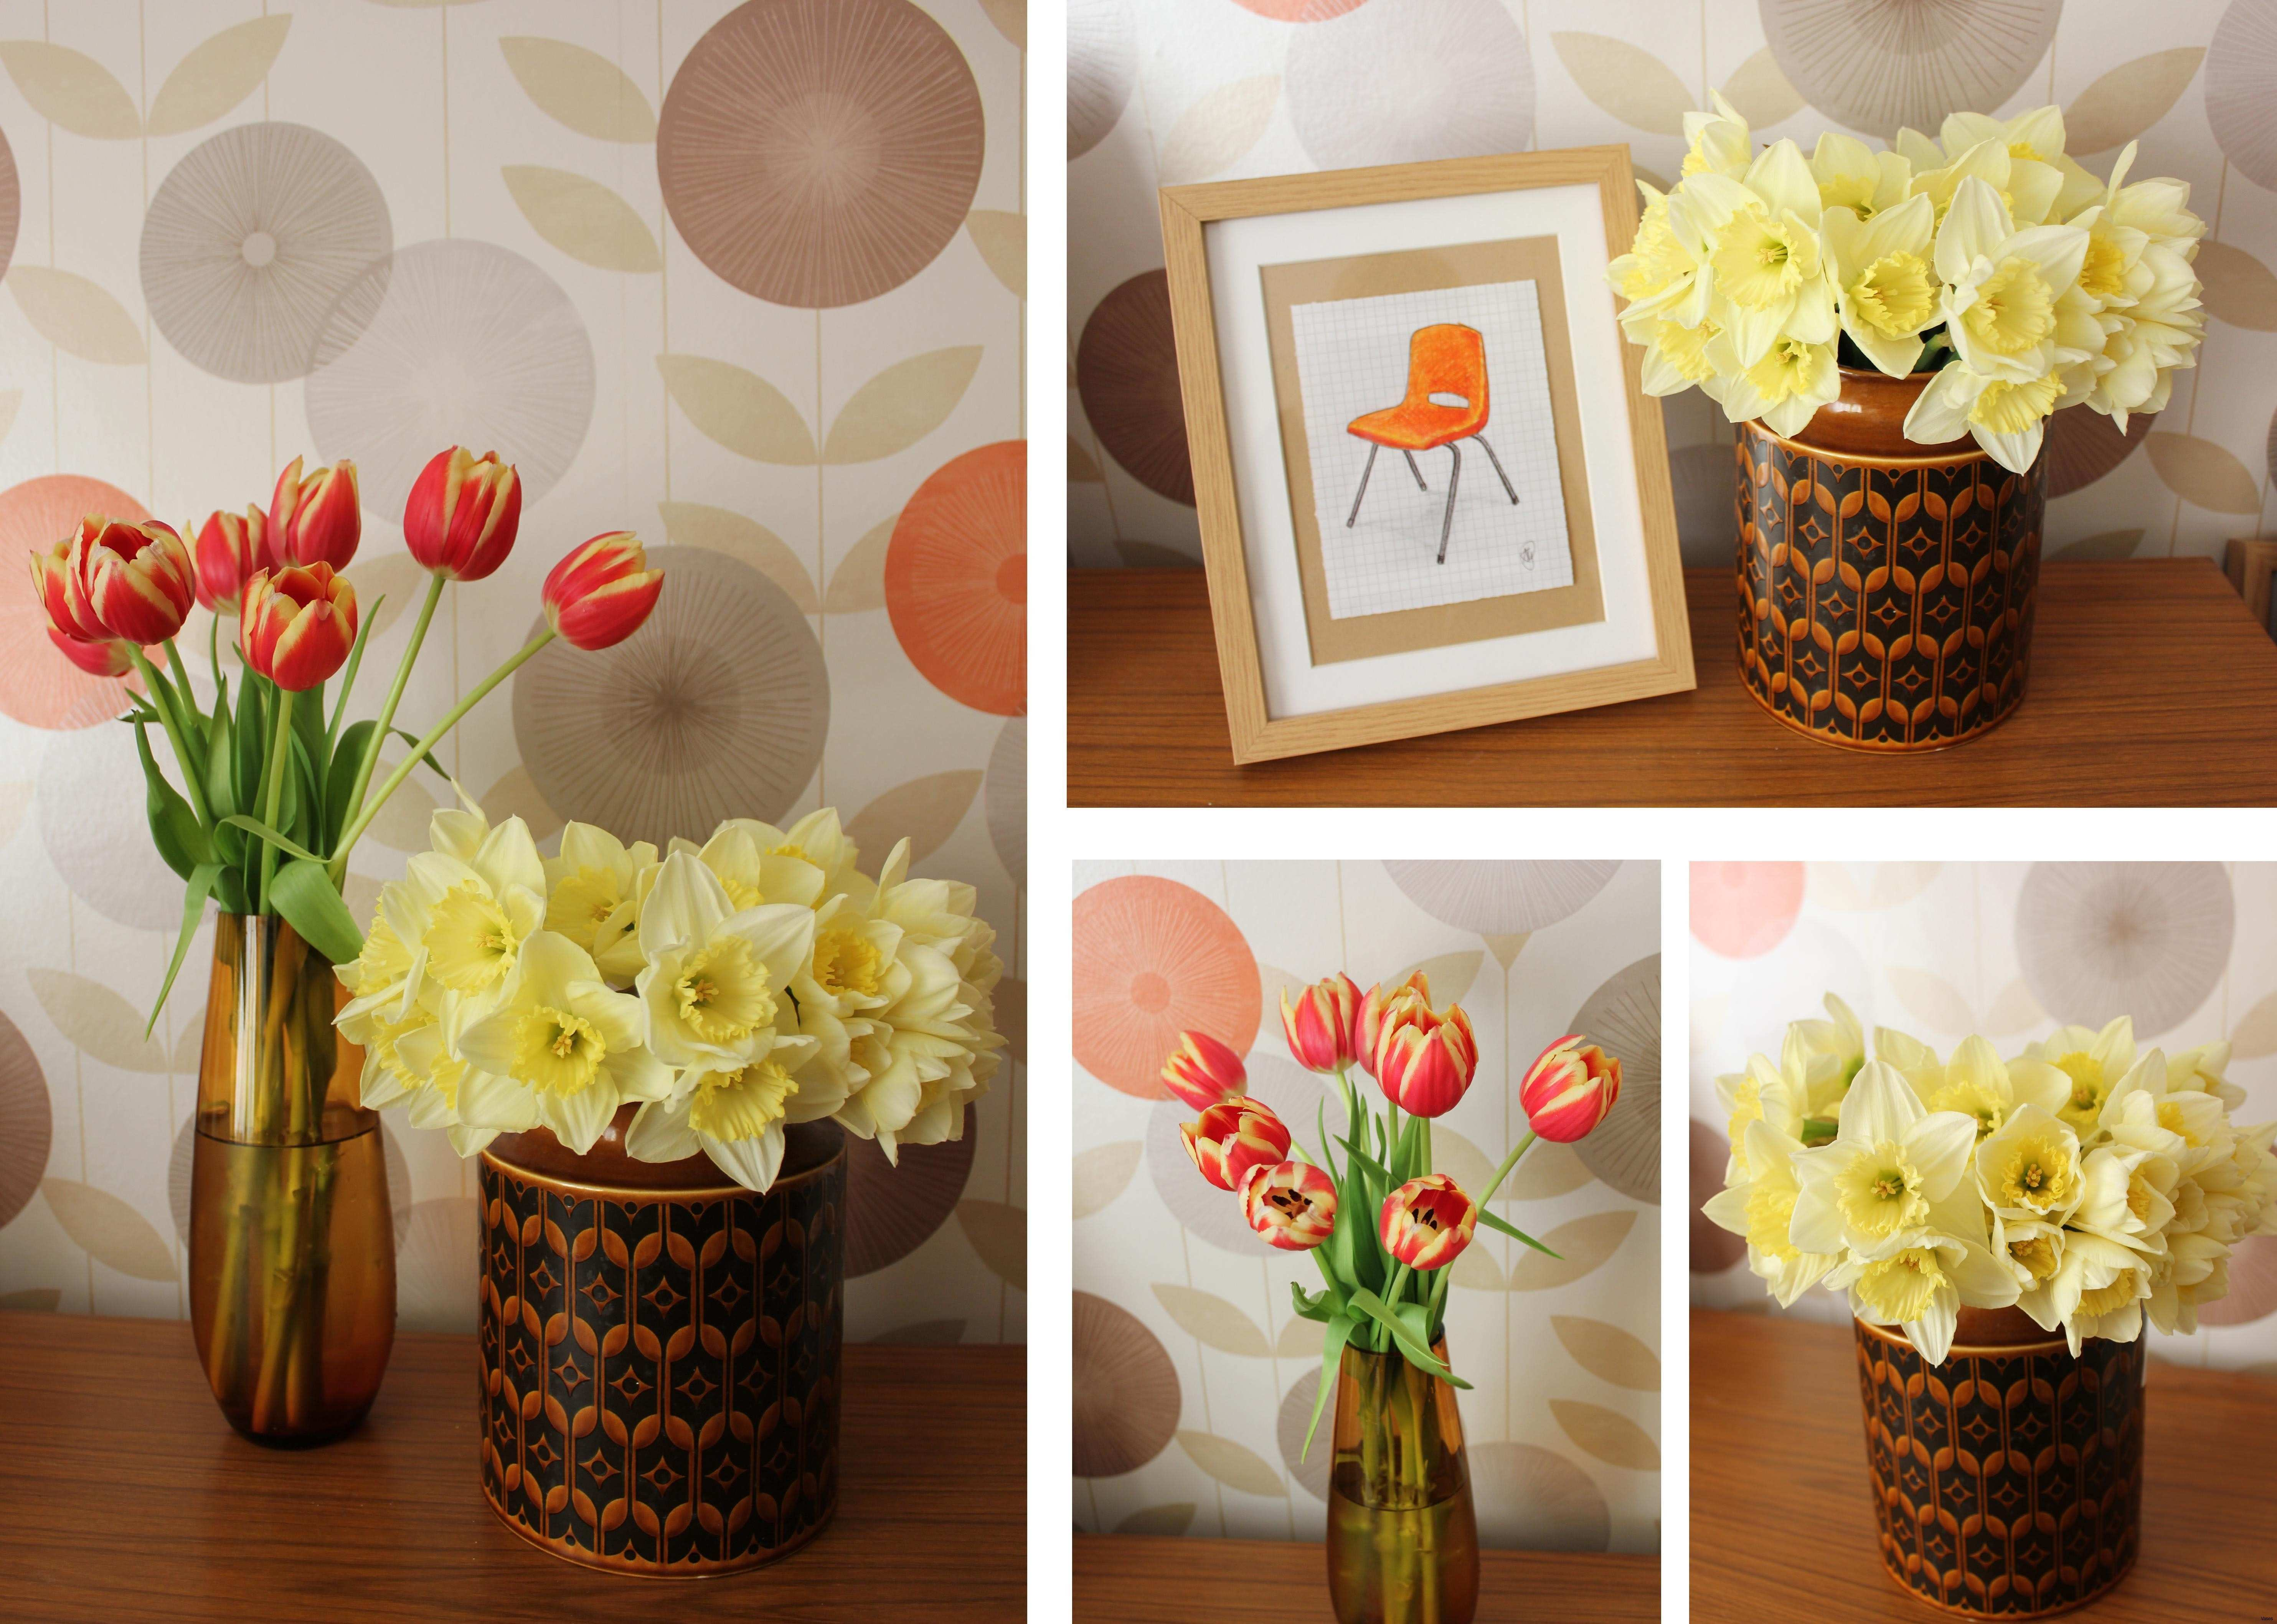 44 Inspirational Fun Arts and Crafts to Do at Home